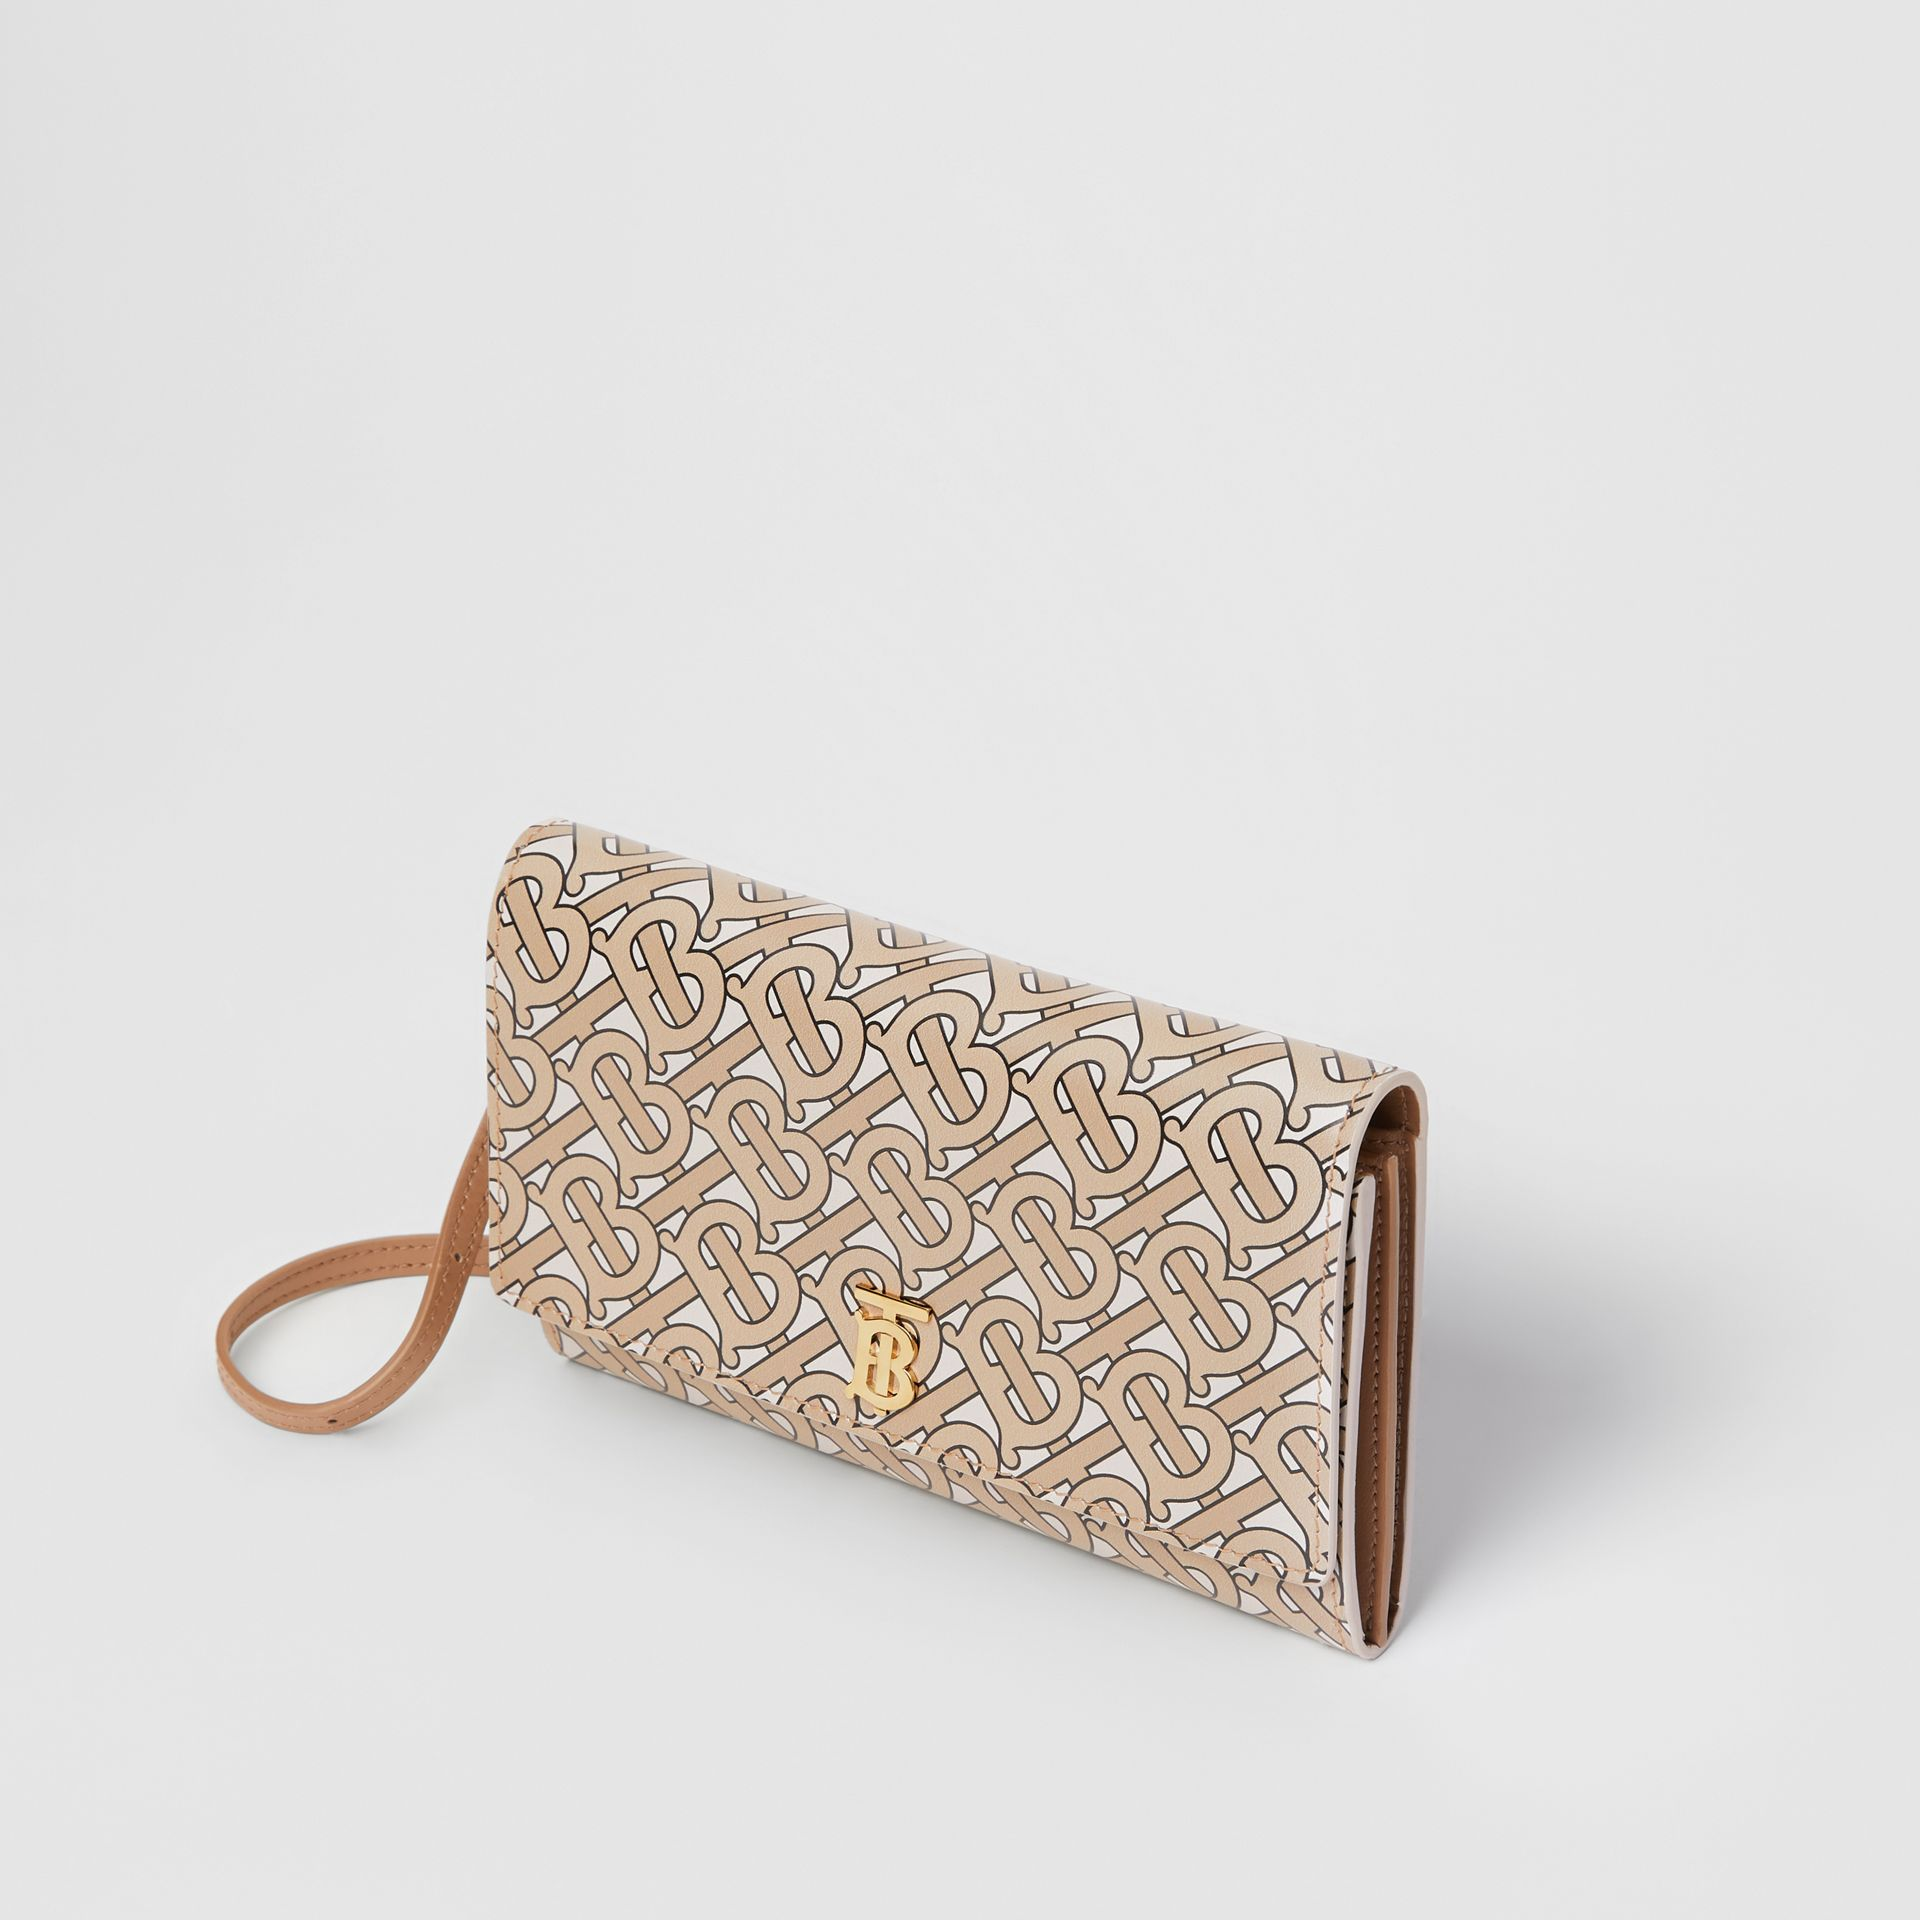 Monogram Print Leather Wallet with Detachable Strap in Beige - Women | Burberry - gallery image 3